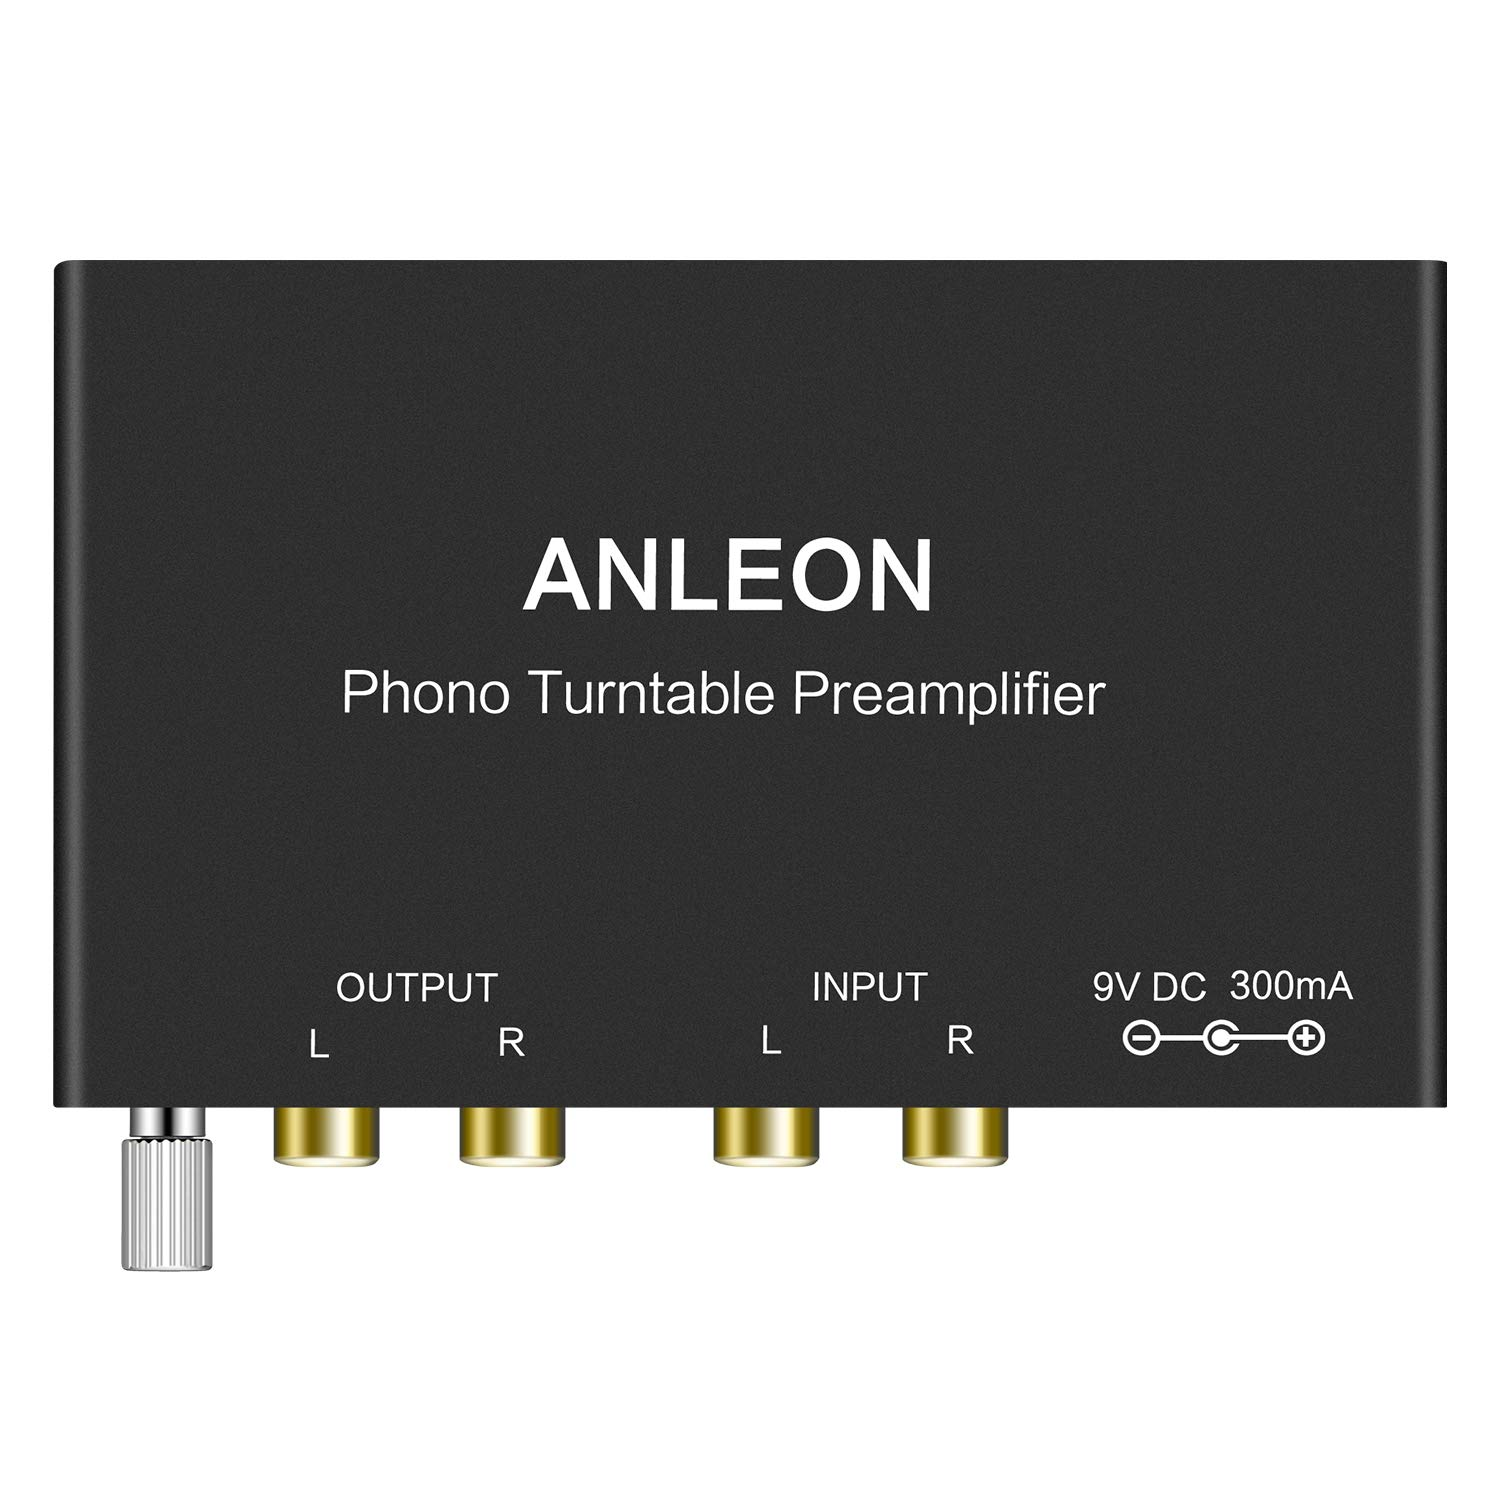 ANLEON Mini Phonograph Preamplifier Phono Turntable Preamp Preamplifier for Audio Technica, Crosley, Jensen, Pioneer, Victrola and More Turntables Phono preamp stereo turntable rca pre amplifier to